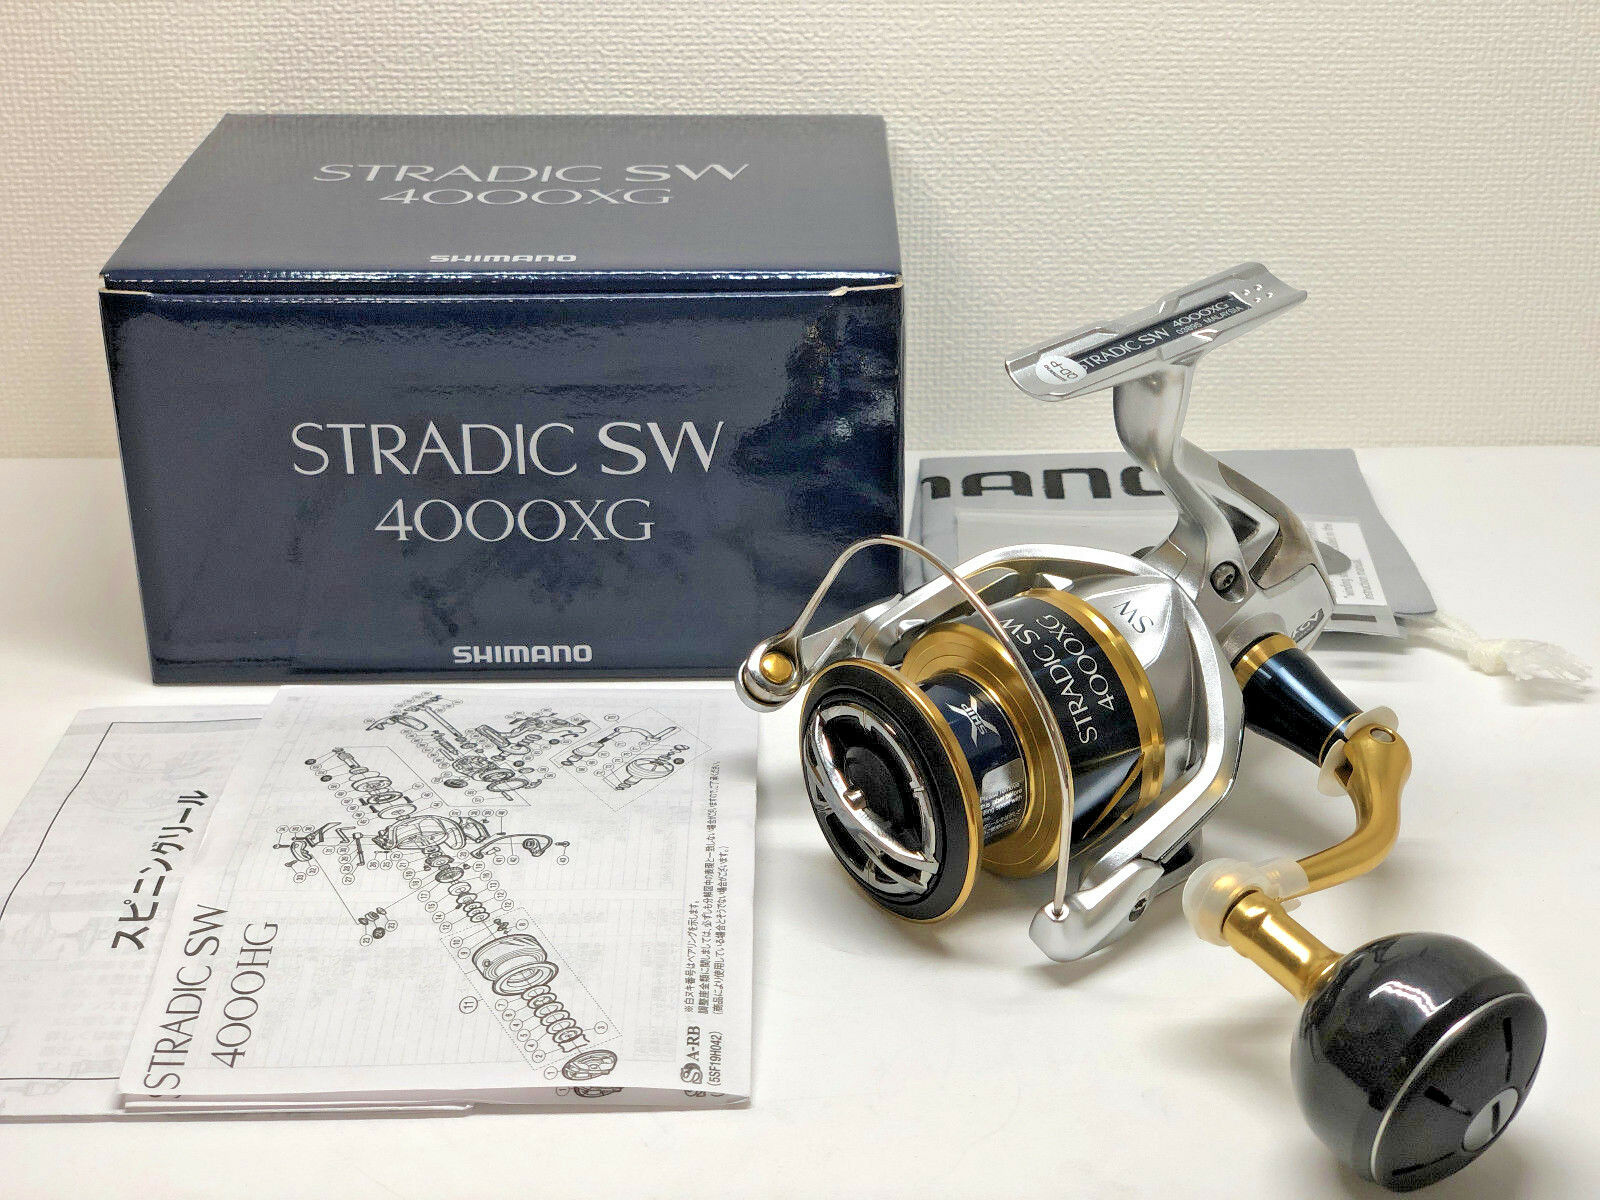 SHIMANO 18 STRADIC SW 4000XG  - Free Shipping from Japan